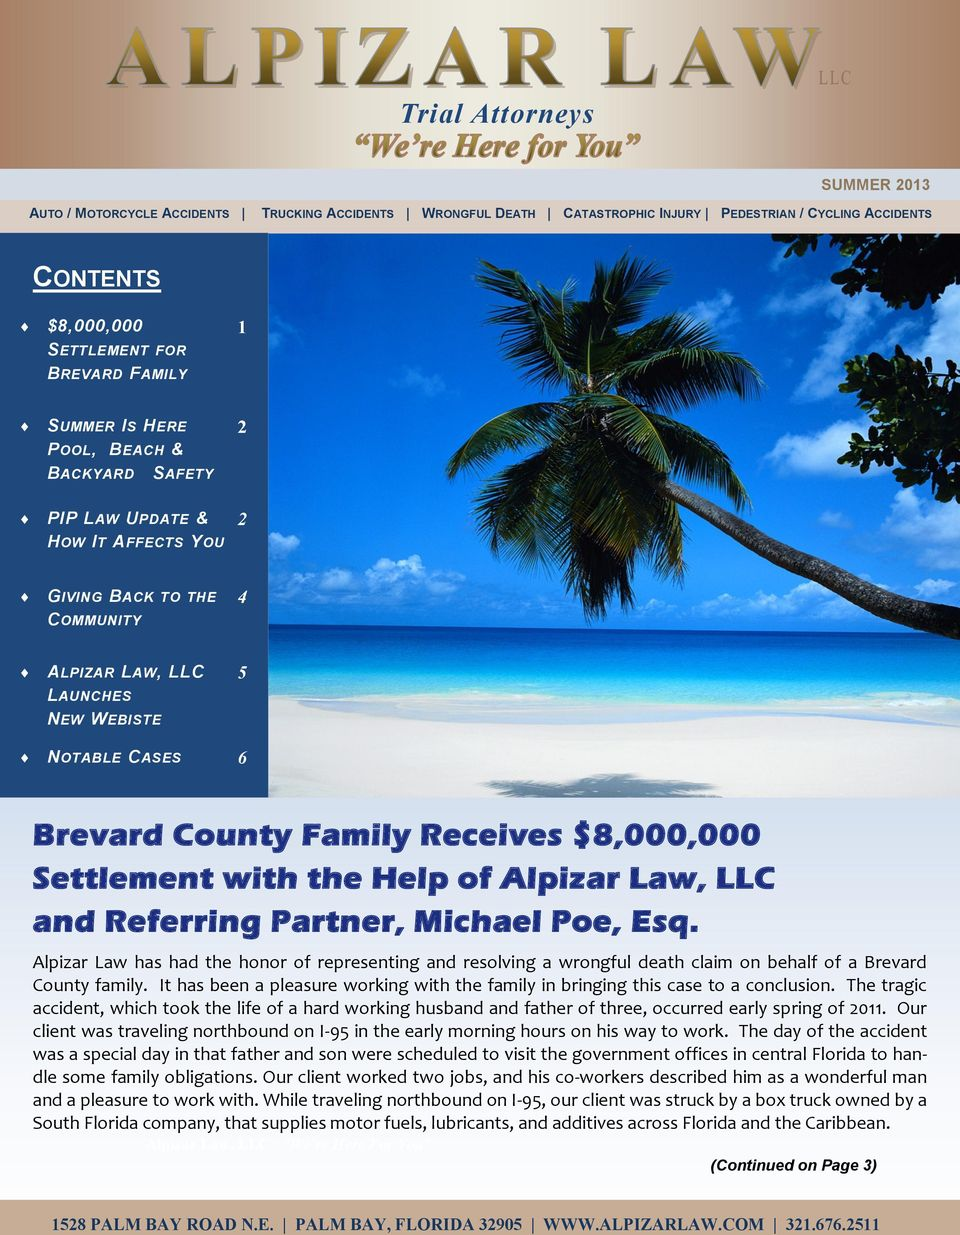 $8,000,000 Settlement with the Help of Alpizar Law, LLC and Referring Partner, Michael Poe, Esq.